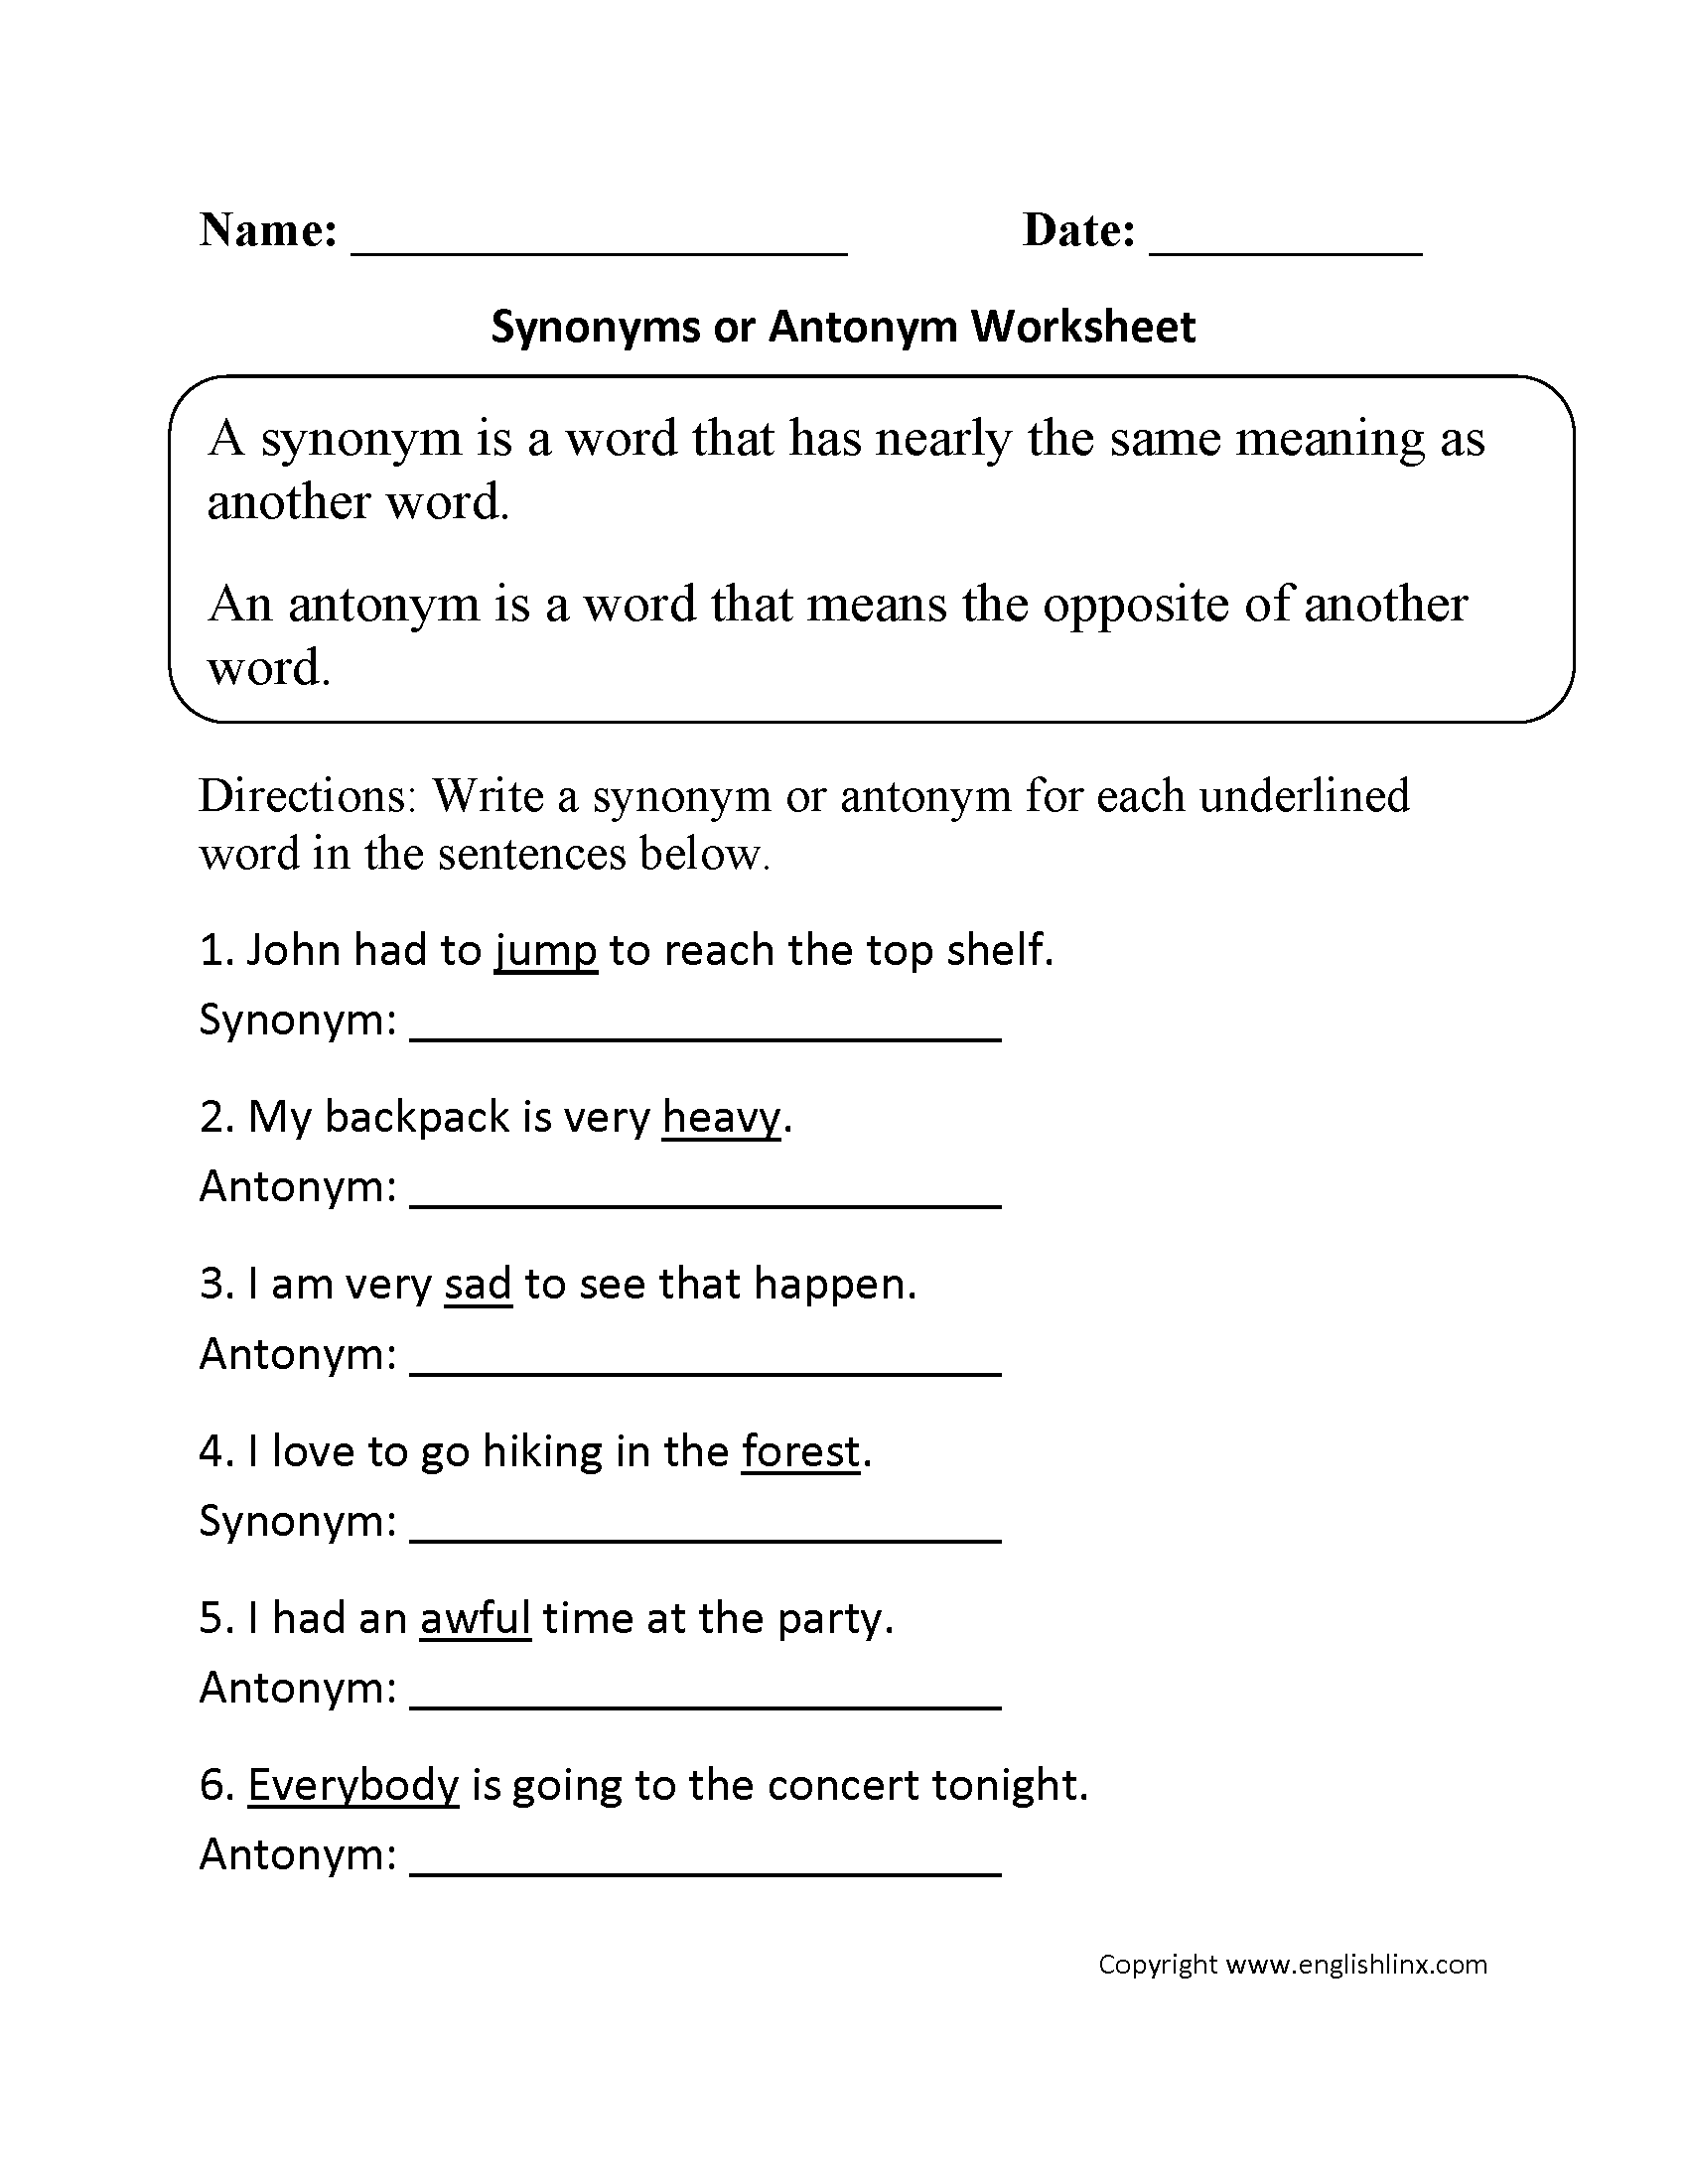 Worksheet Jump Synonym vocabulary worksheets synonym and antonym or worksheet